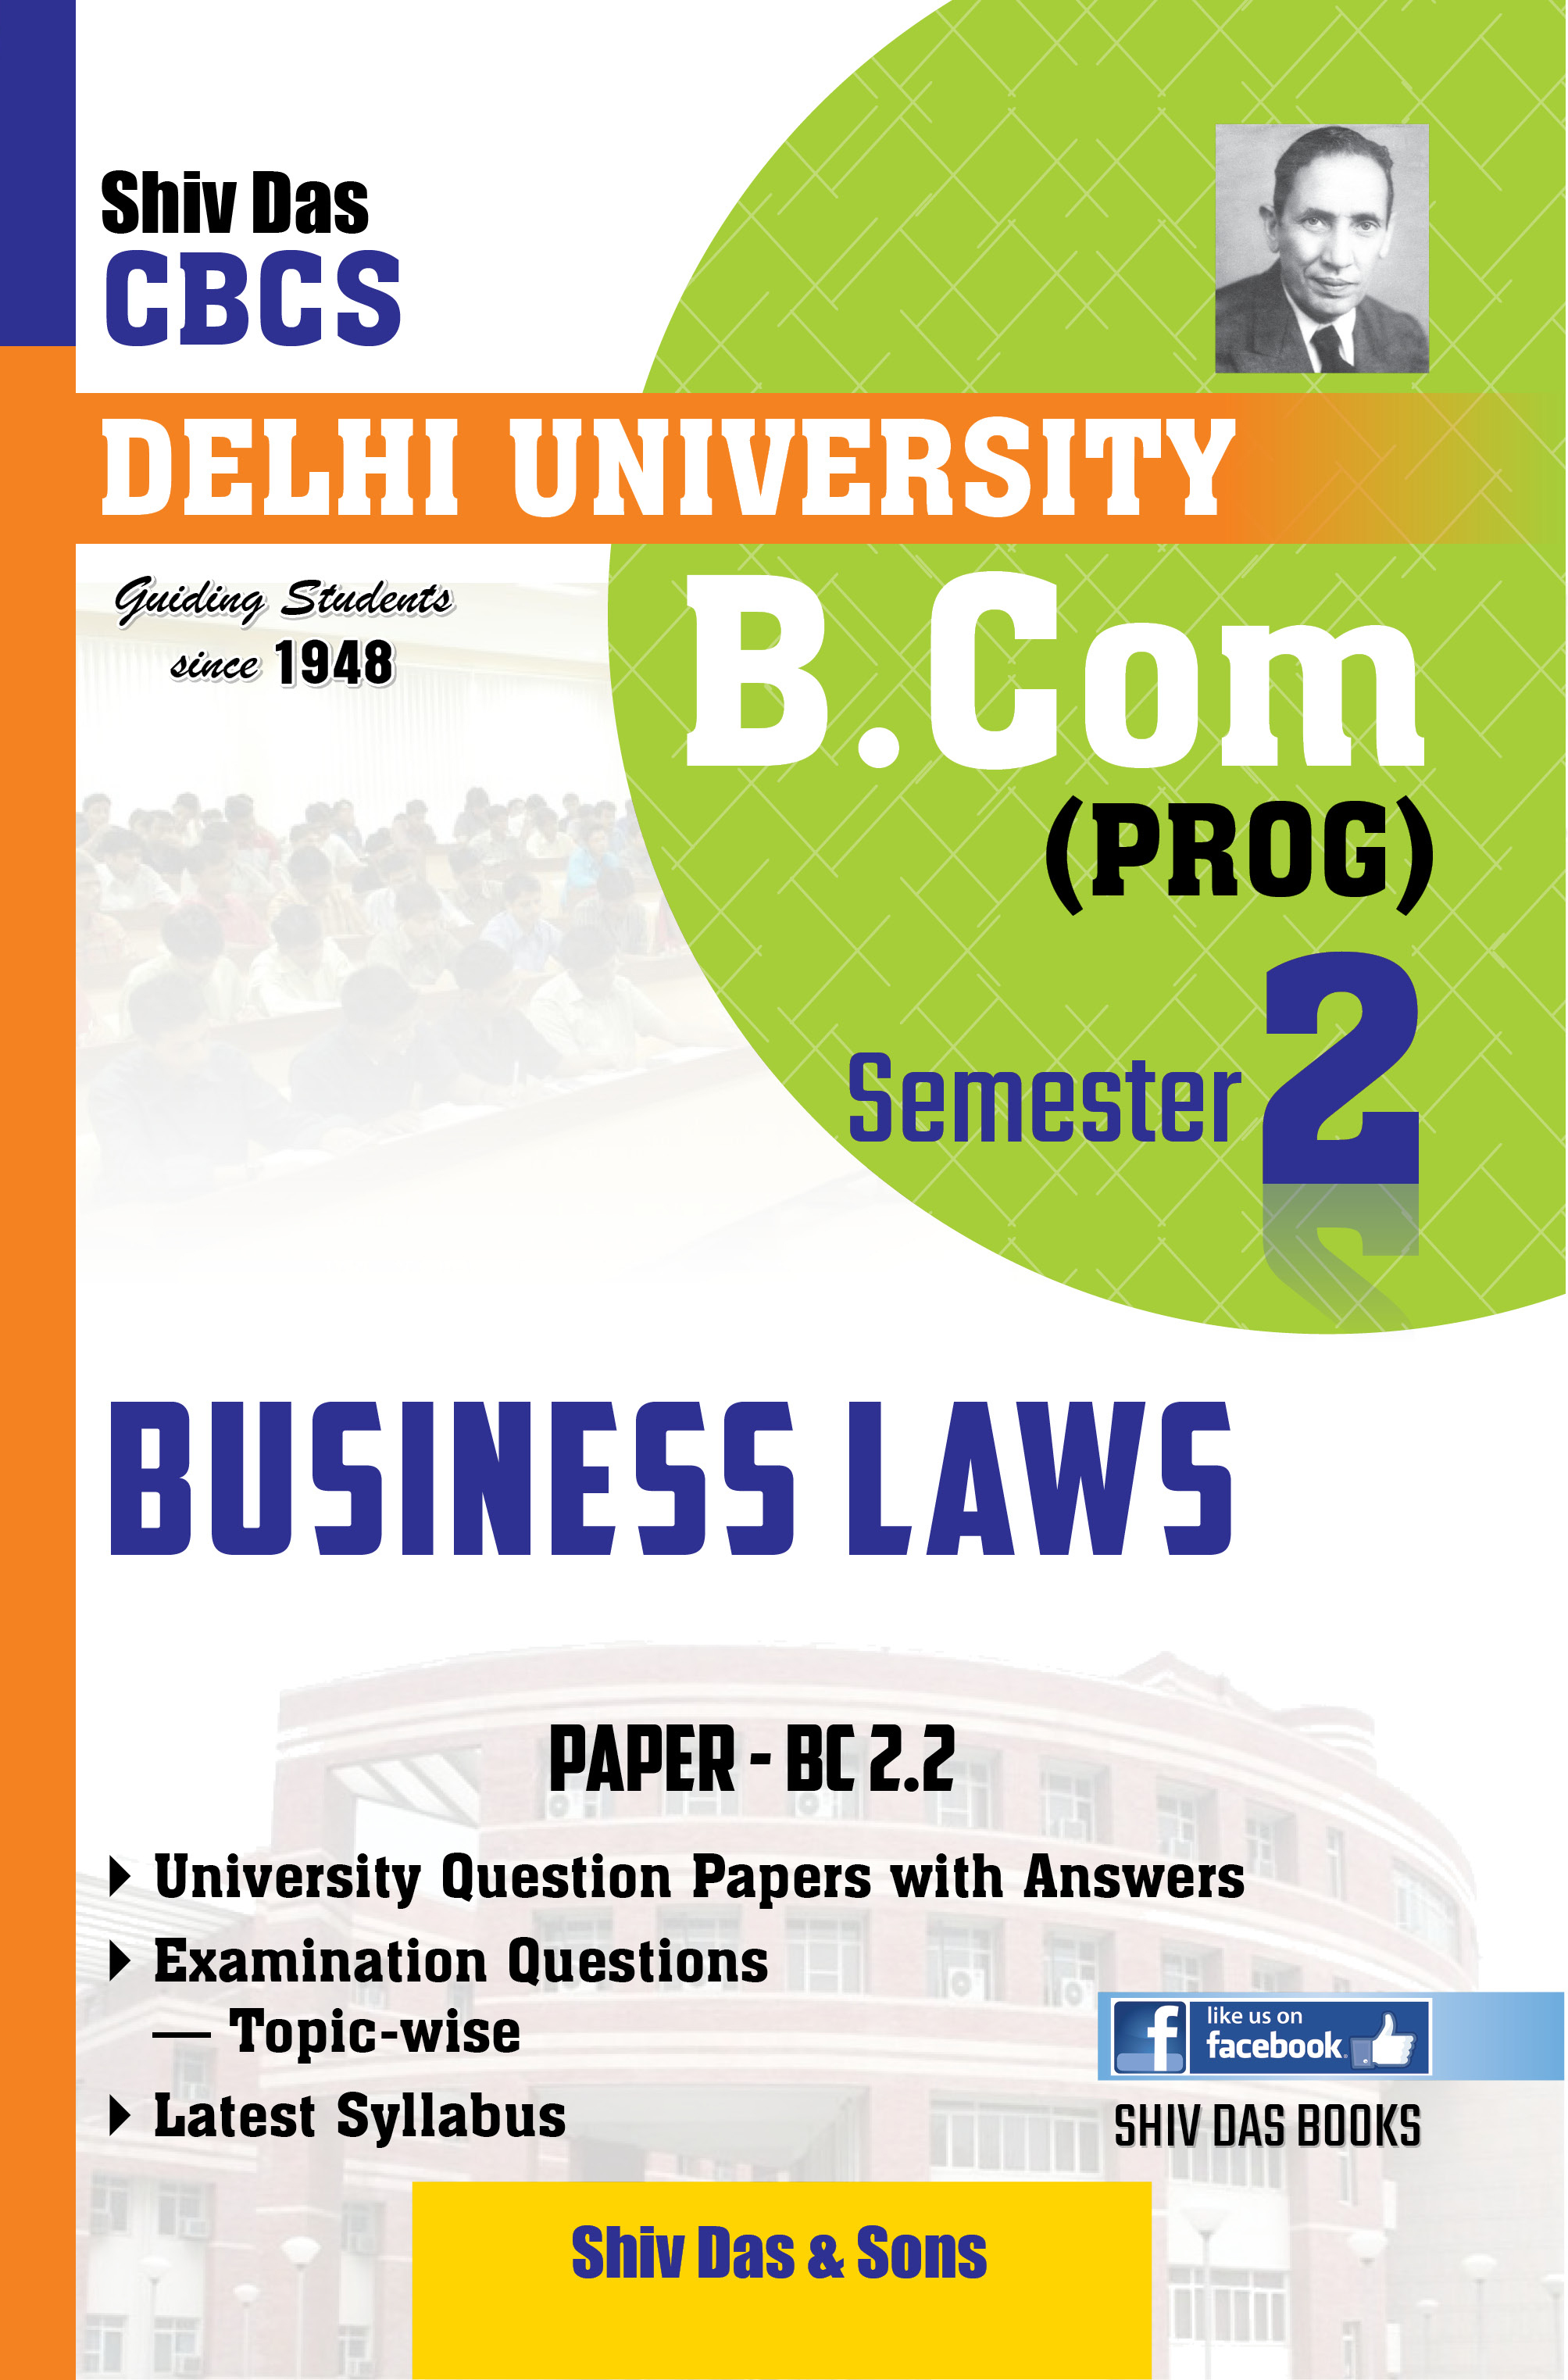 Business Laws for B.Com Prog Semester-2